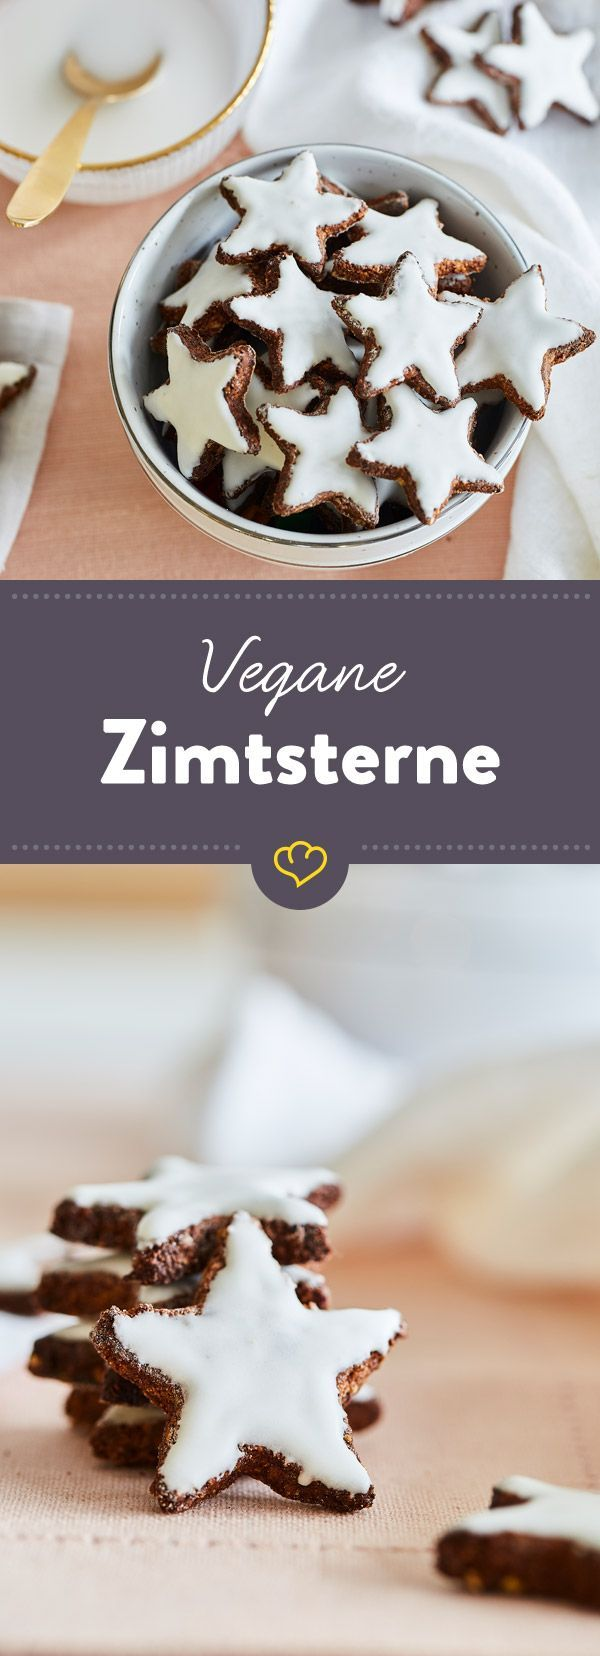 vegane zimtsterne rezept vegan food inspiration. Black Bedroom Furniture Sets. Home Design Ideas